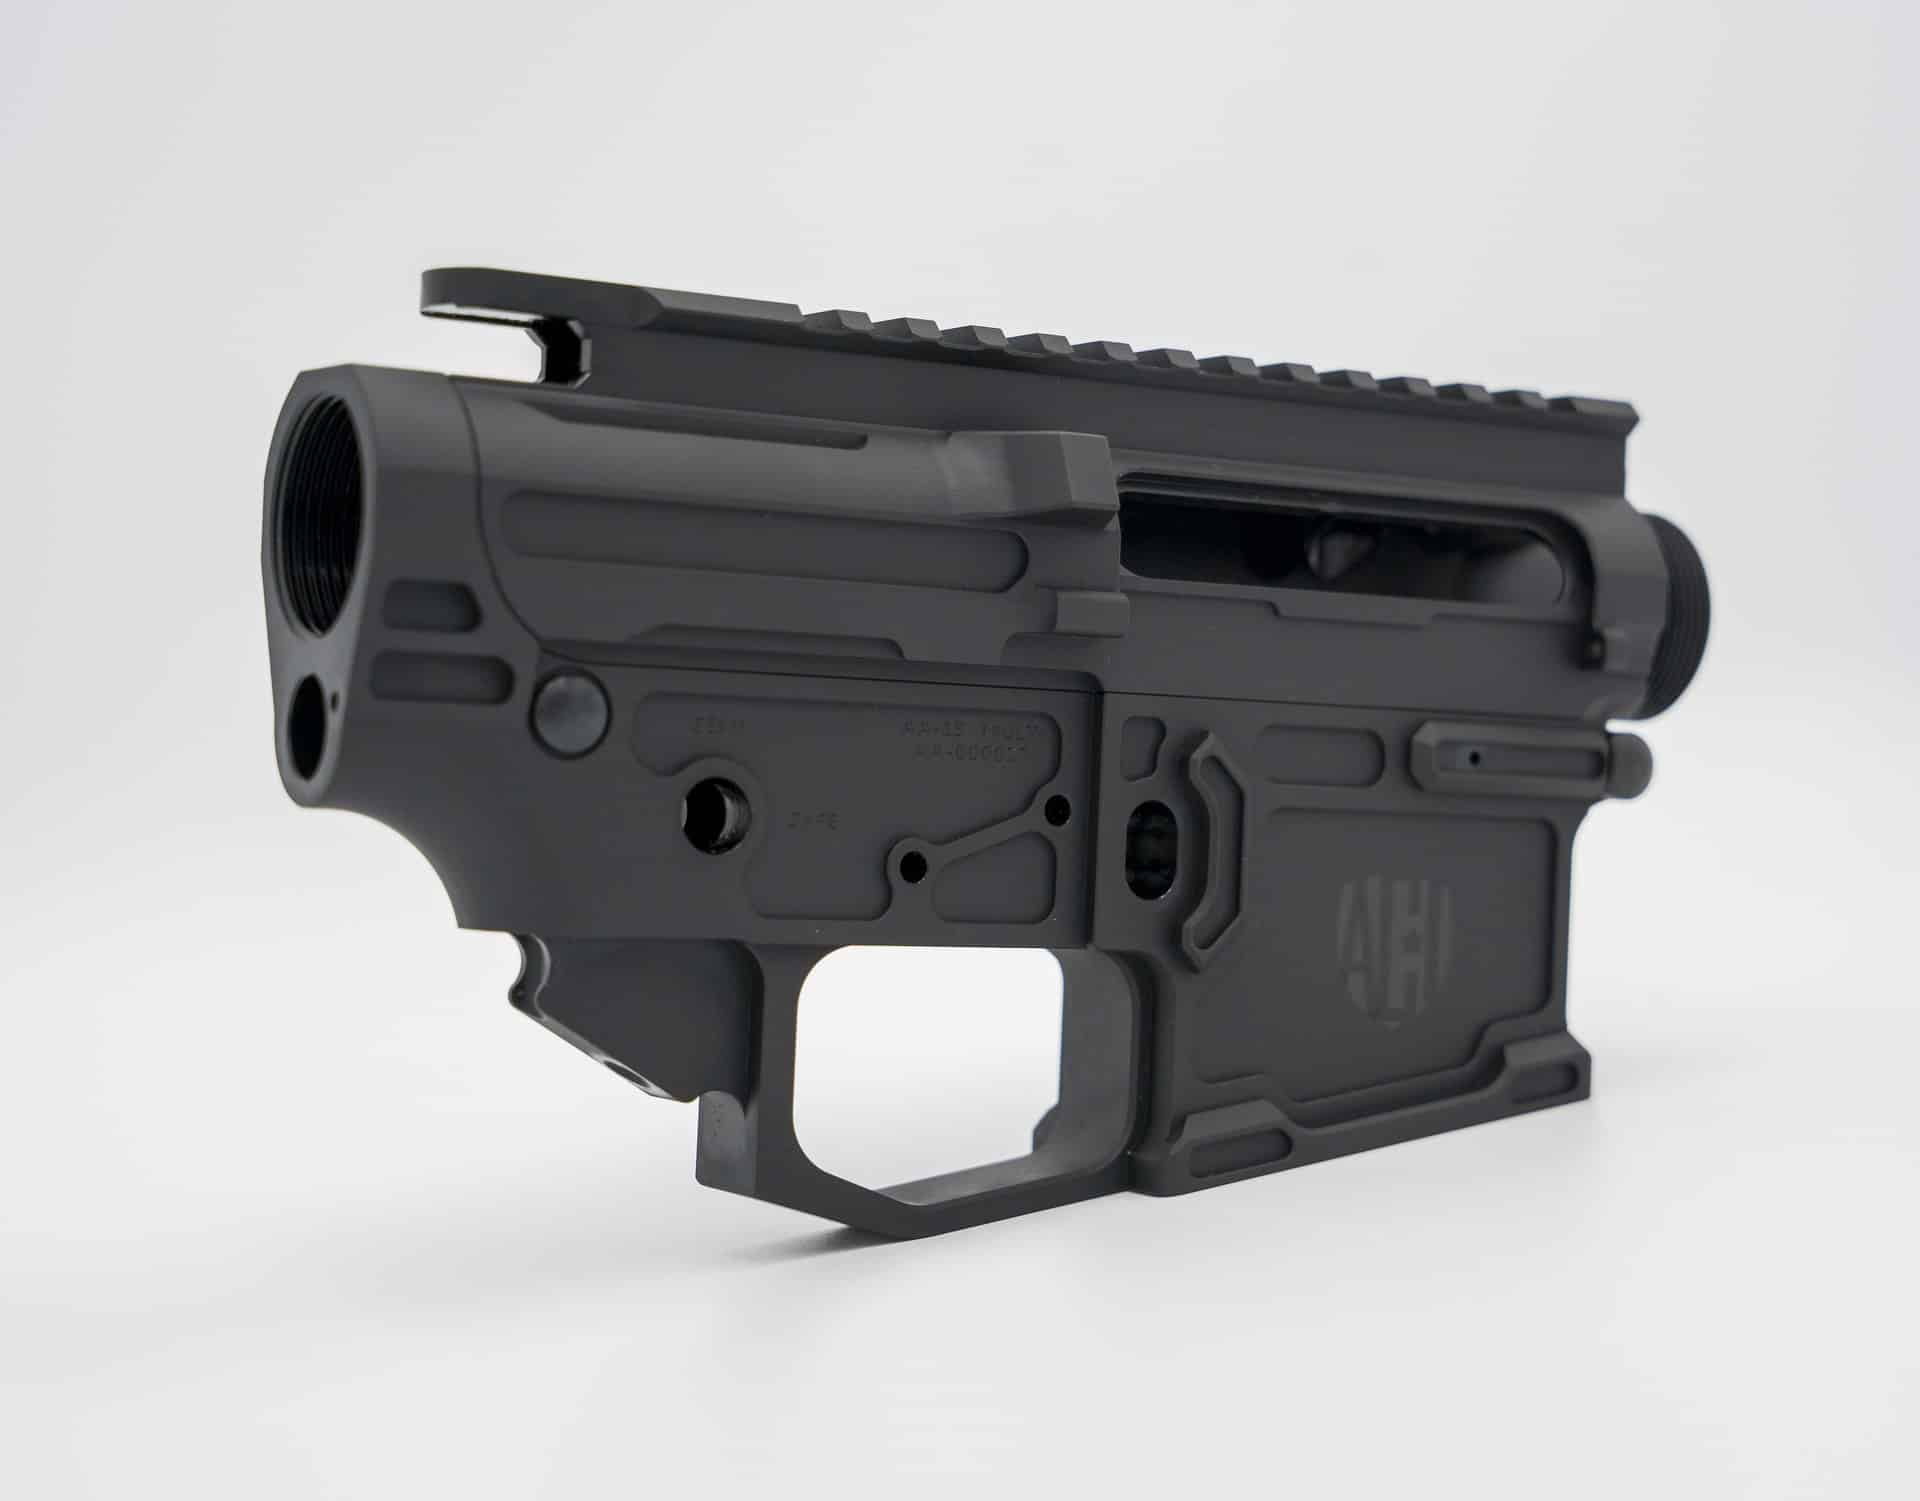 AR15 BILLET 556 NATO | ANDRO CORP INDUSTRIES